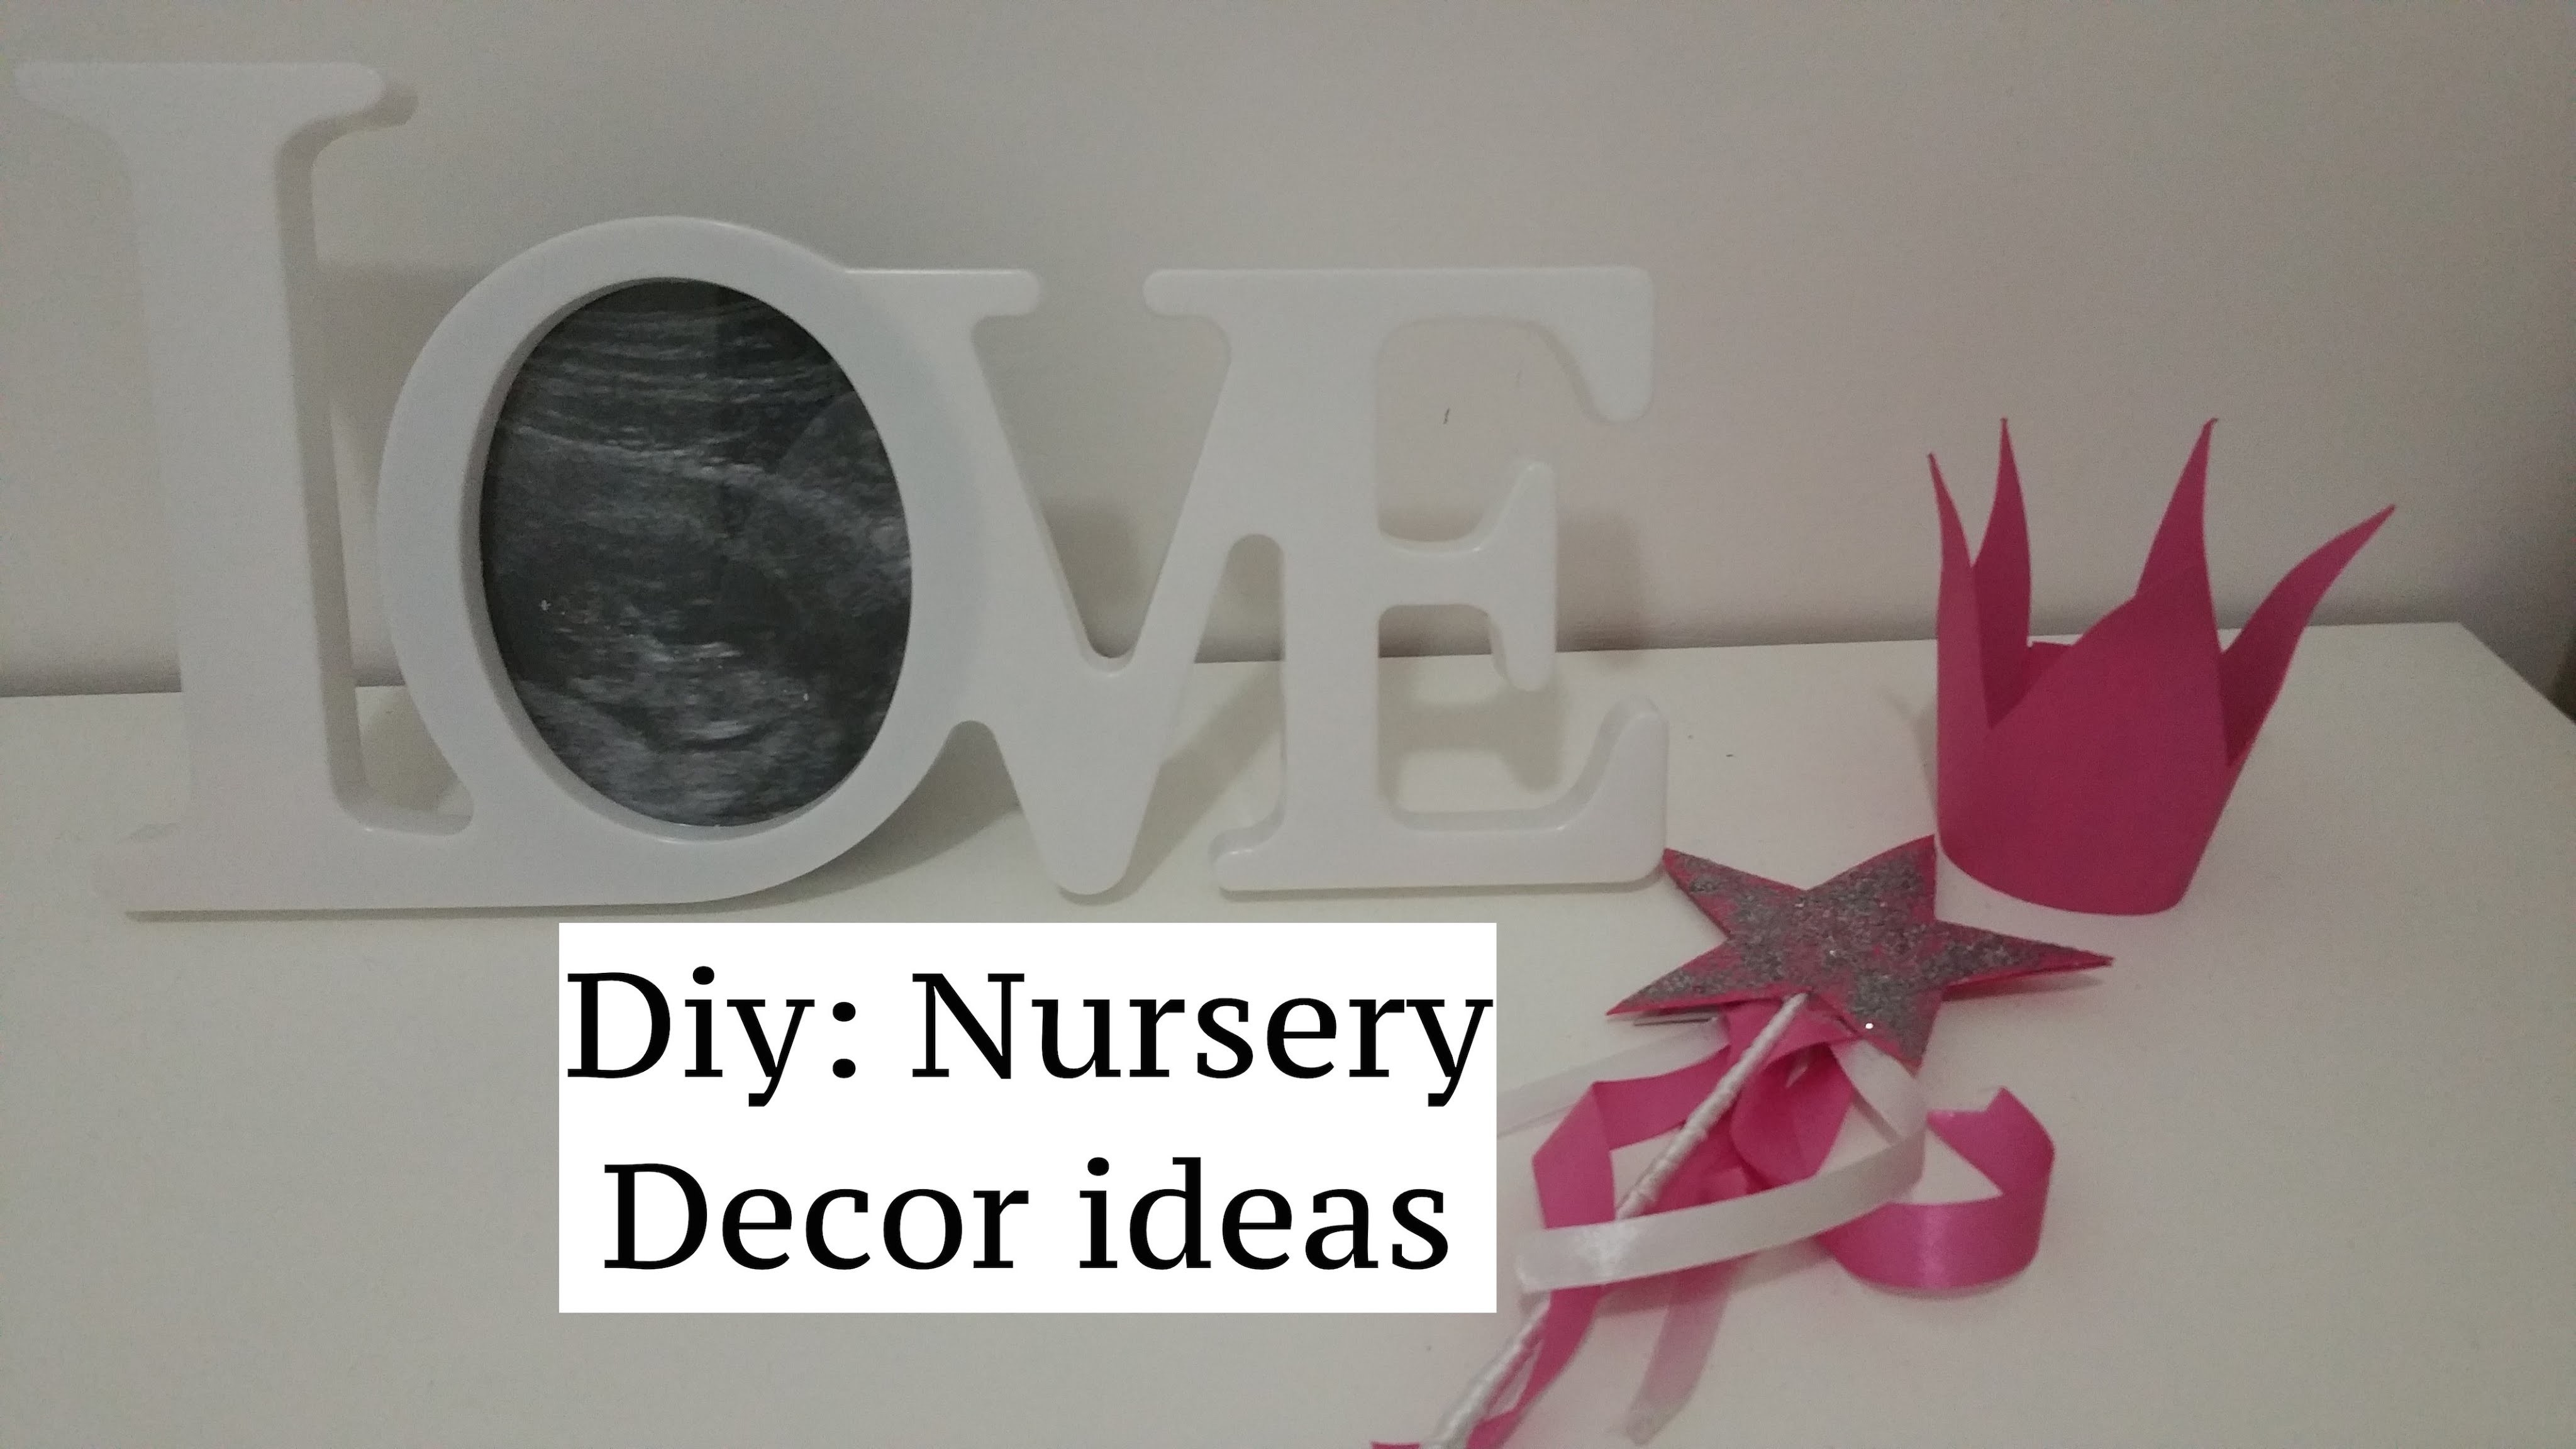 Diy: tutorial 2 Easy Nursery Decor Ideas. 2 semplici idee per decorare la camera del bebe